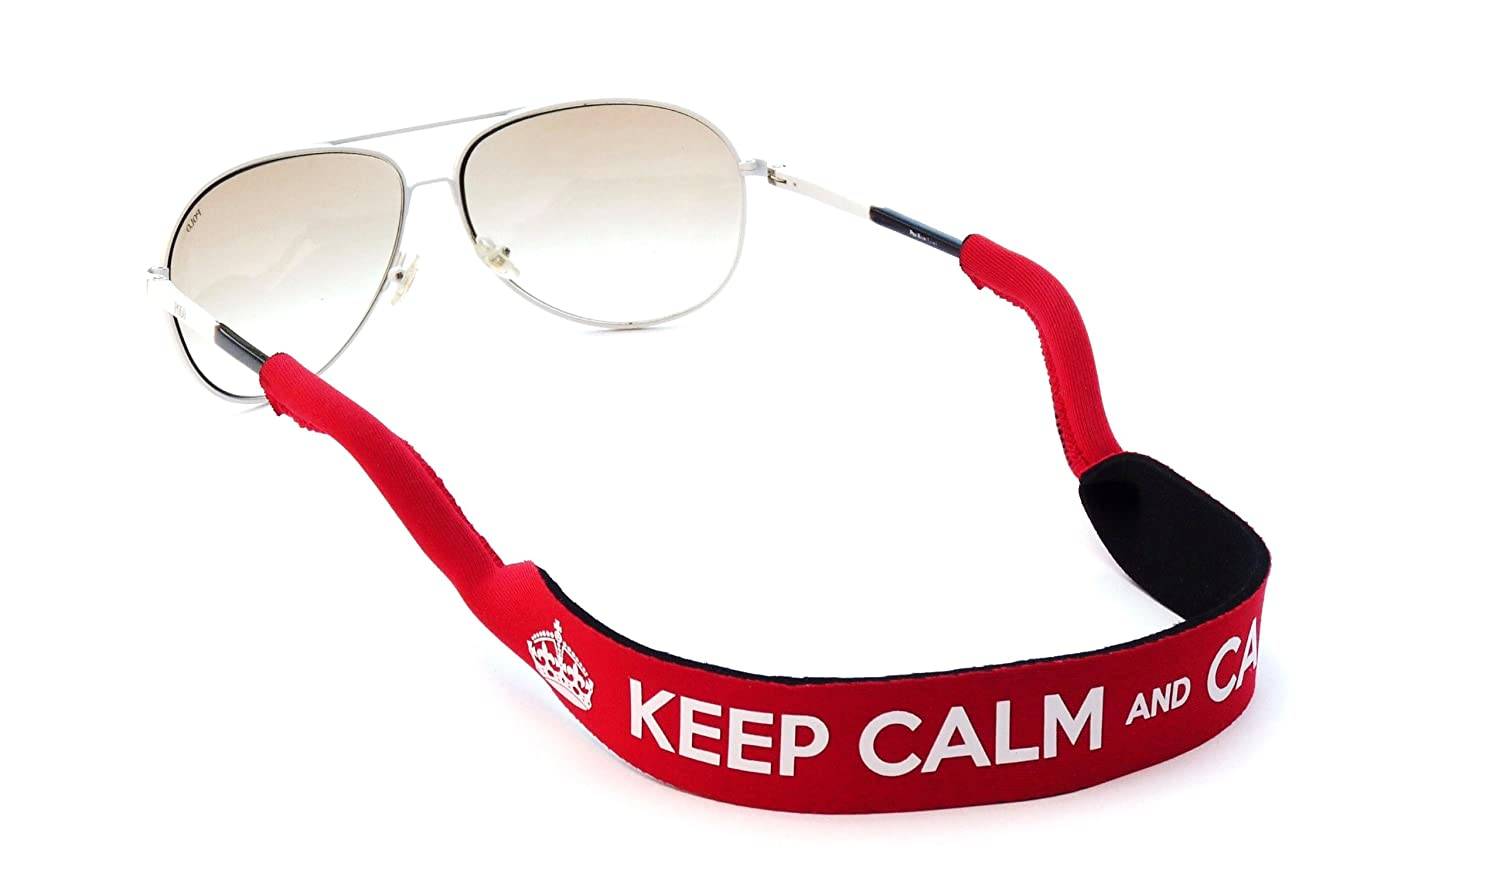 2579b211813 KEEP CALM and CARRY ON Sunglasses Glasses Spectacle Neoprene Stretchy Sports  Band Strap Cord Chain Holder  Amazon.co.uk  Sports   Outdoors